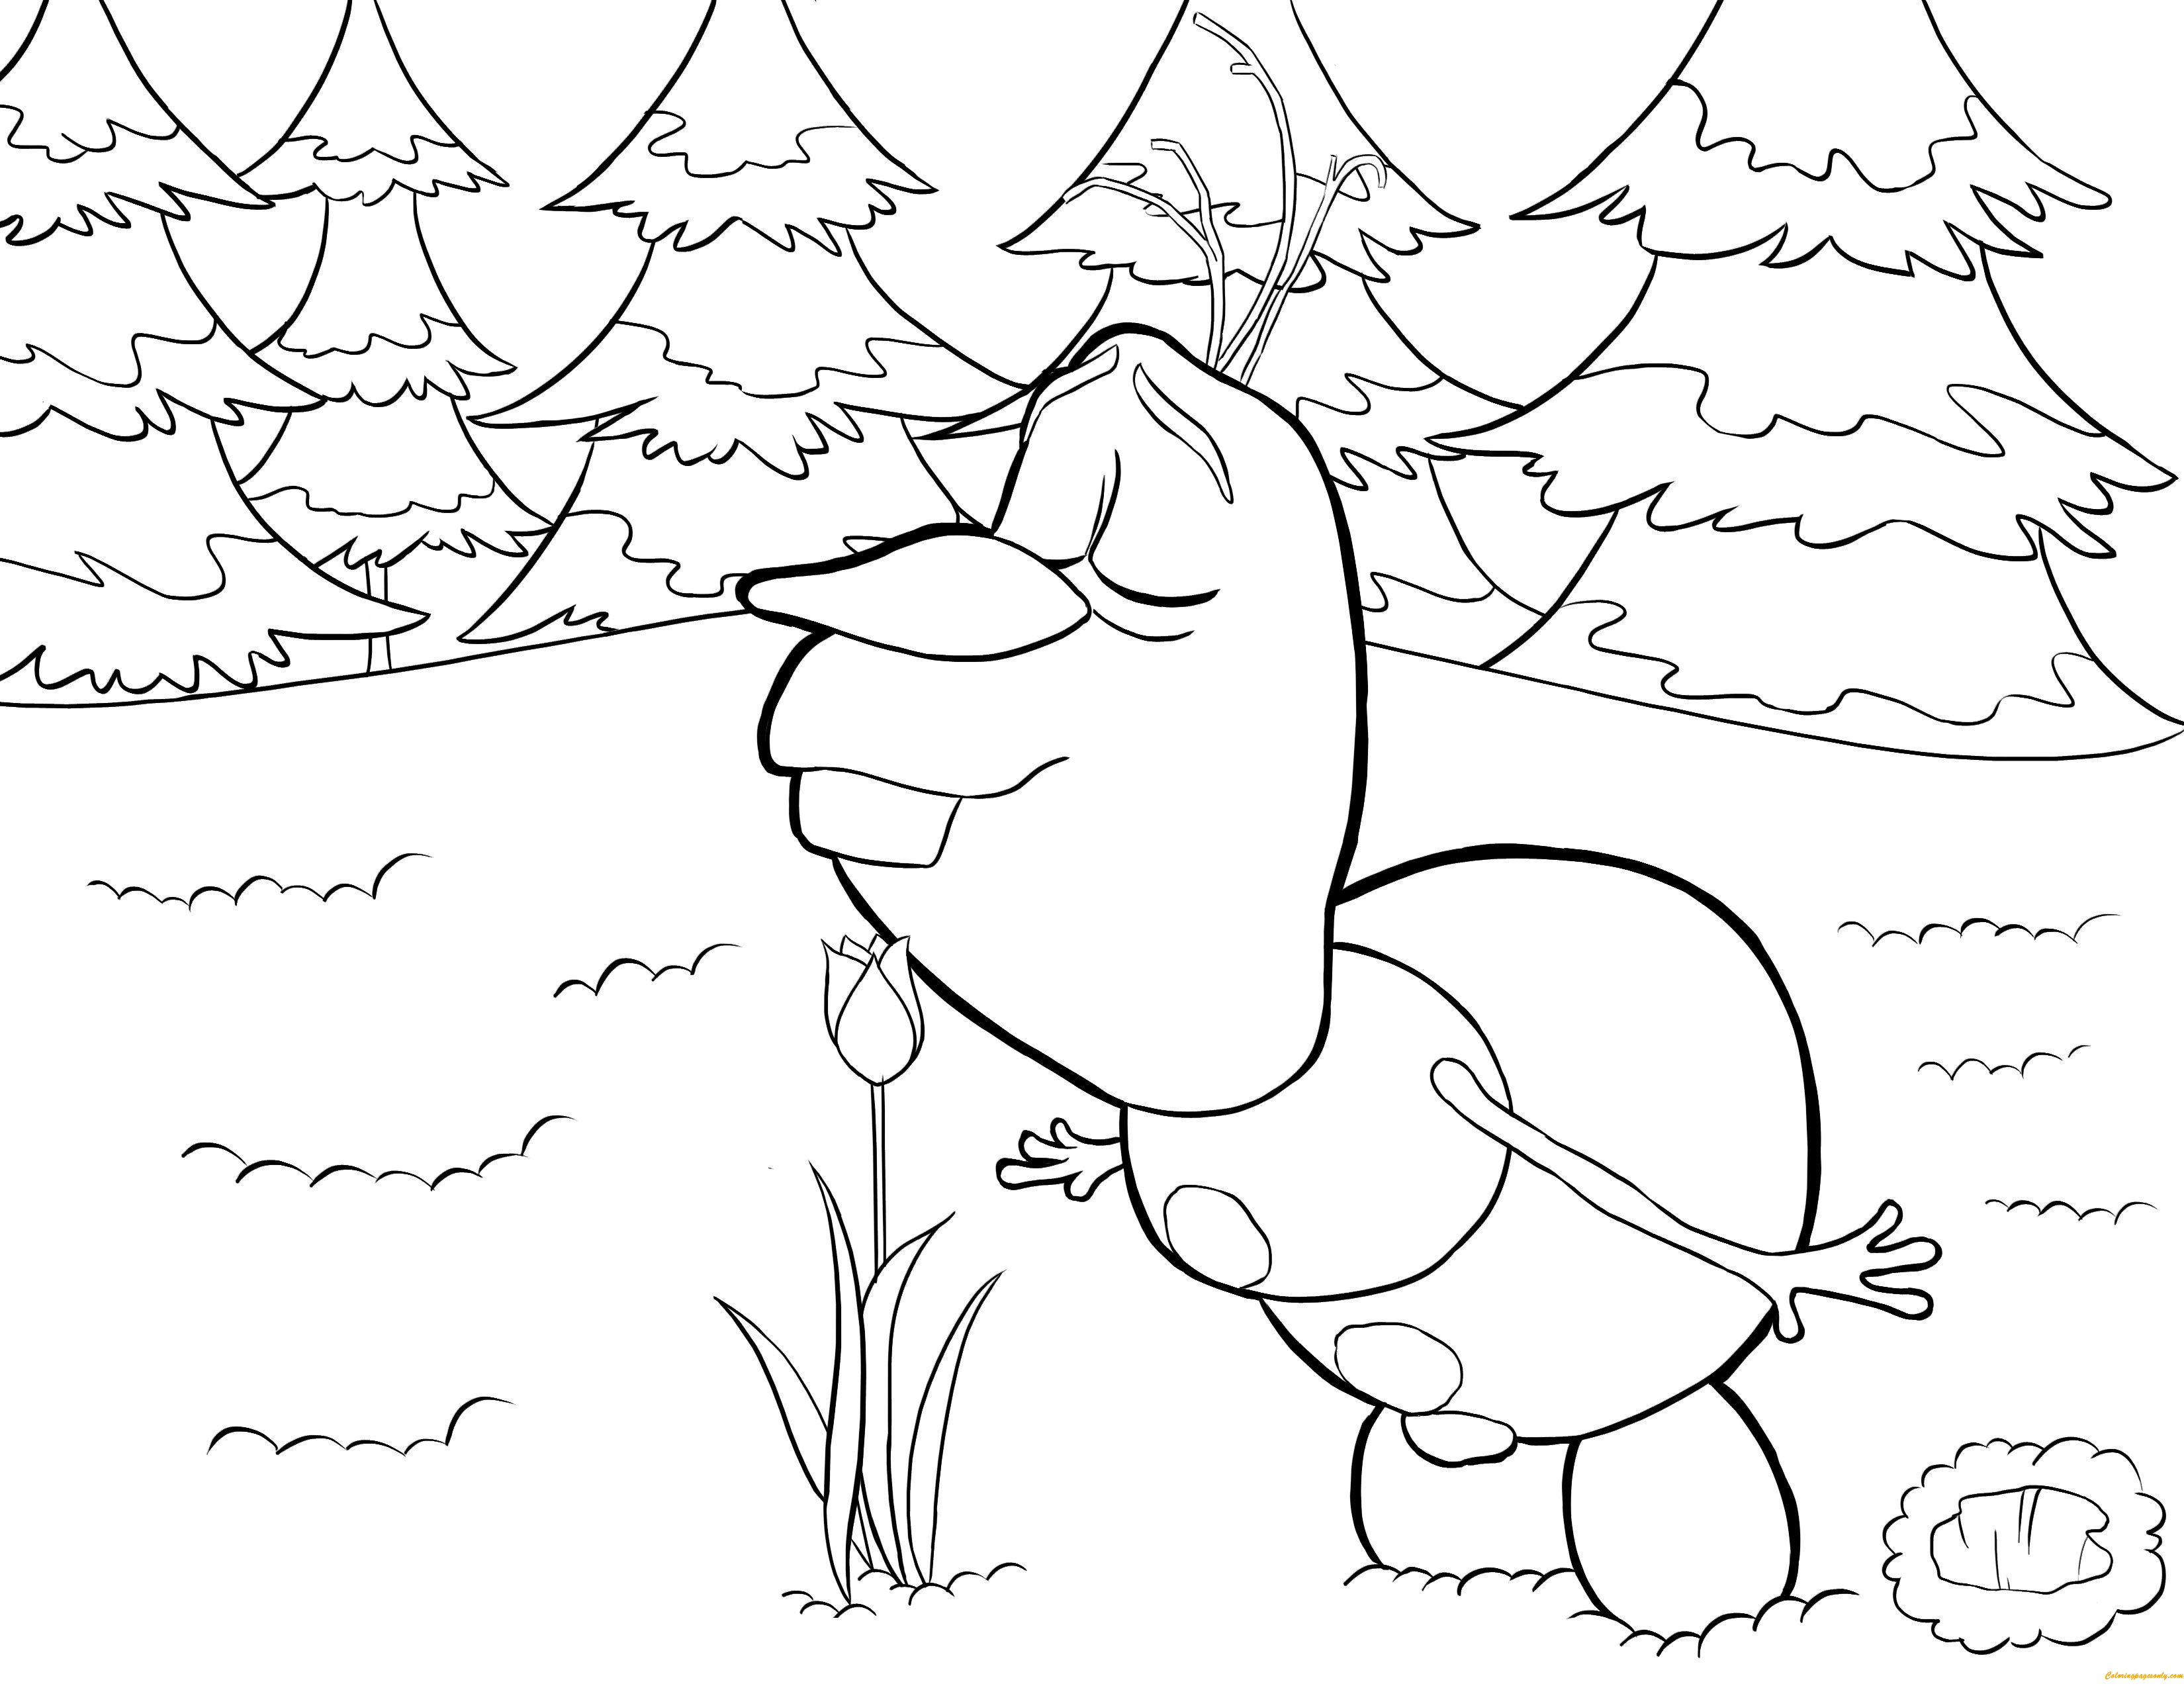 Olaf Likes Flower Coloring Page - Free Coloring Pages Online